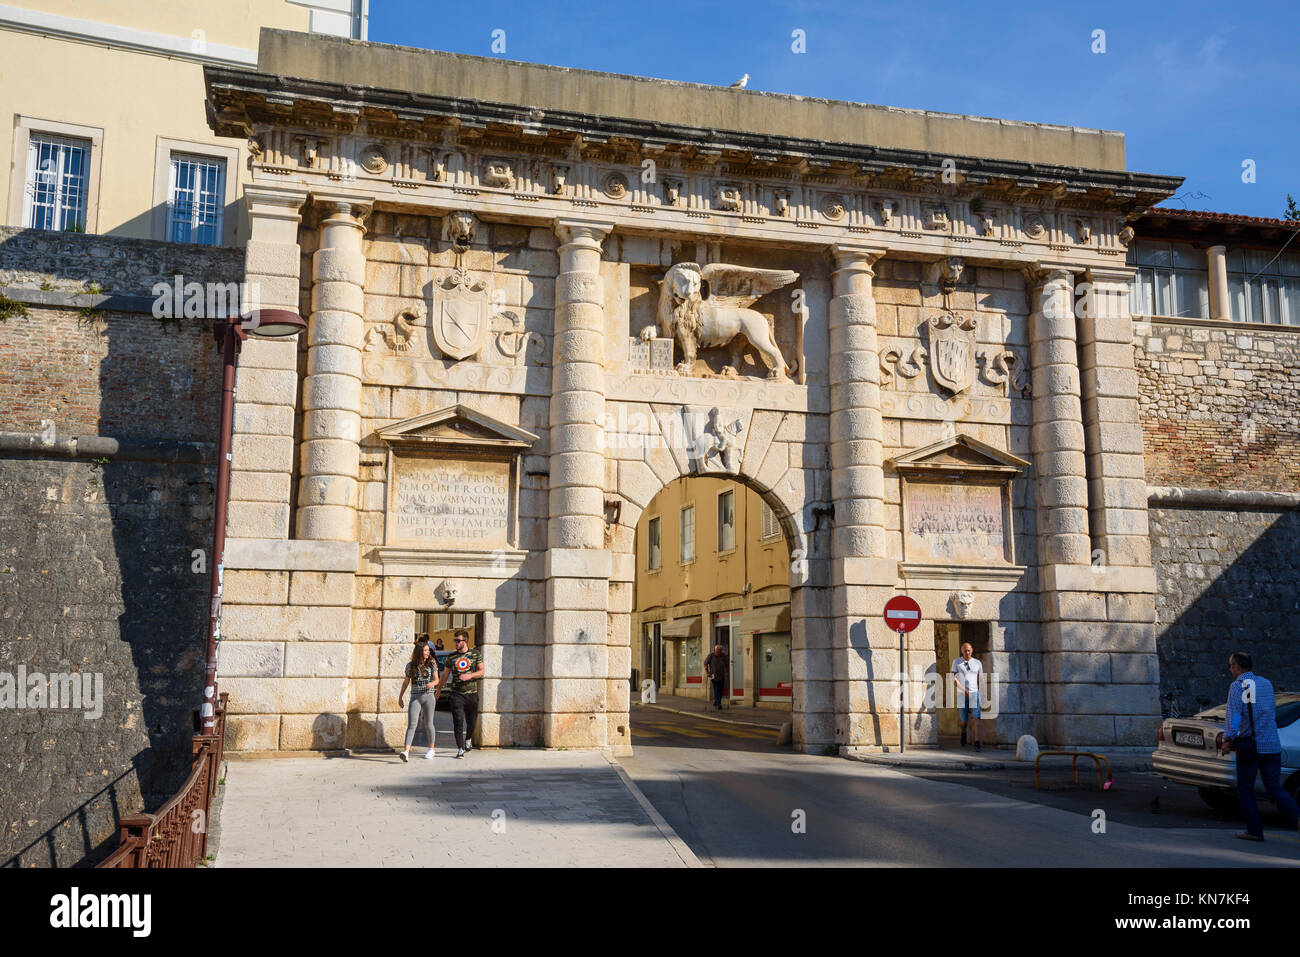 Land Gate and city walls, Old Town, Zadar, Croatia - Stock Image